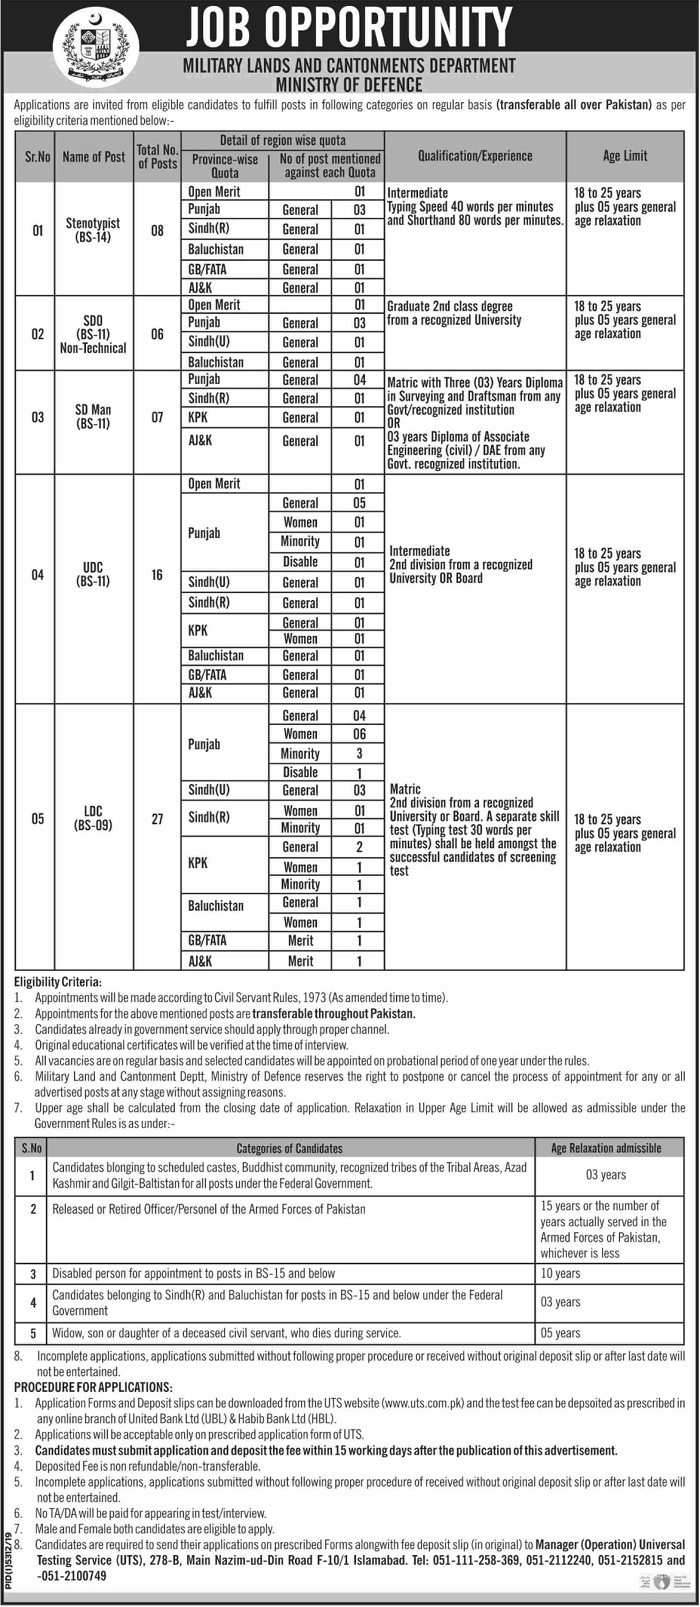 Military Lands Cantonments Department Ministry of Defence Jobs Via UTS